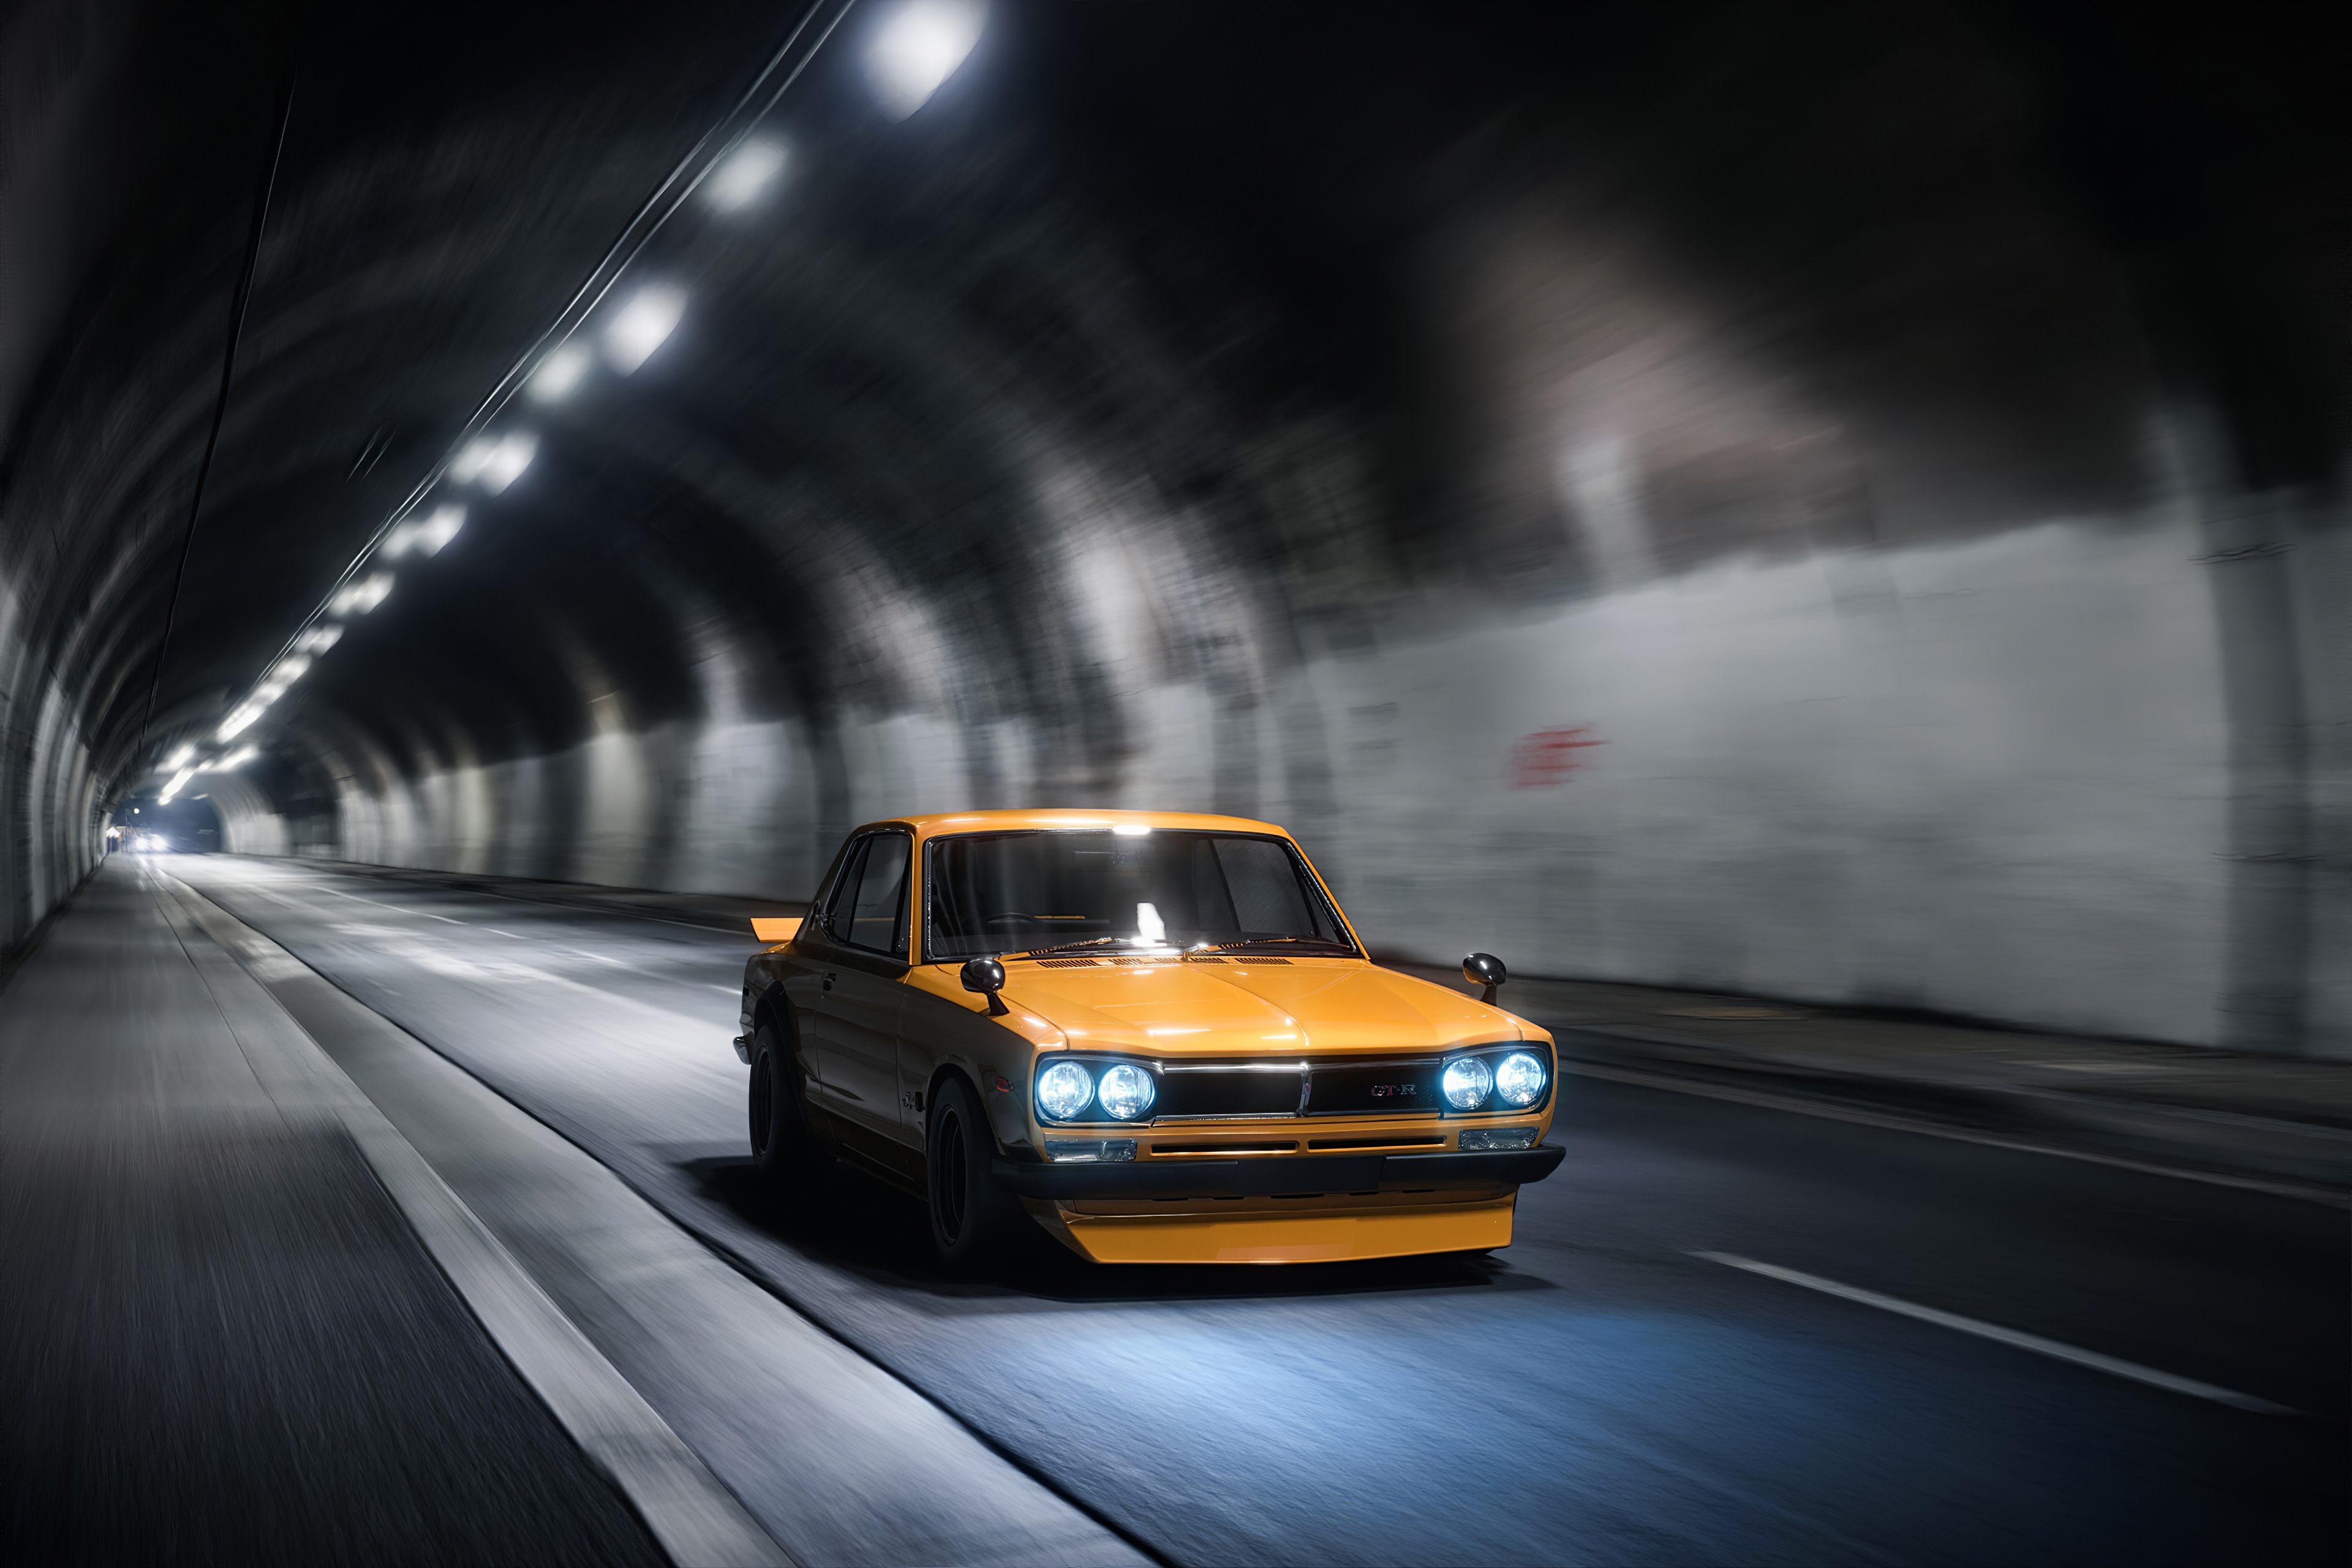 yellow gt modified car tunnel 1577653816 - Yellow Gt Modified Car Tunnel -